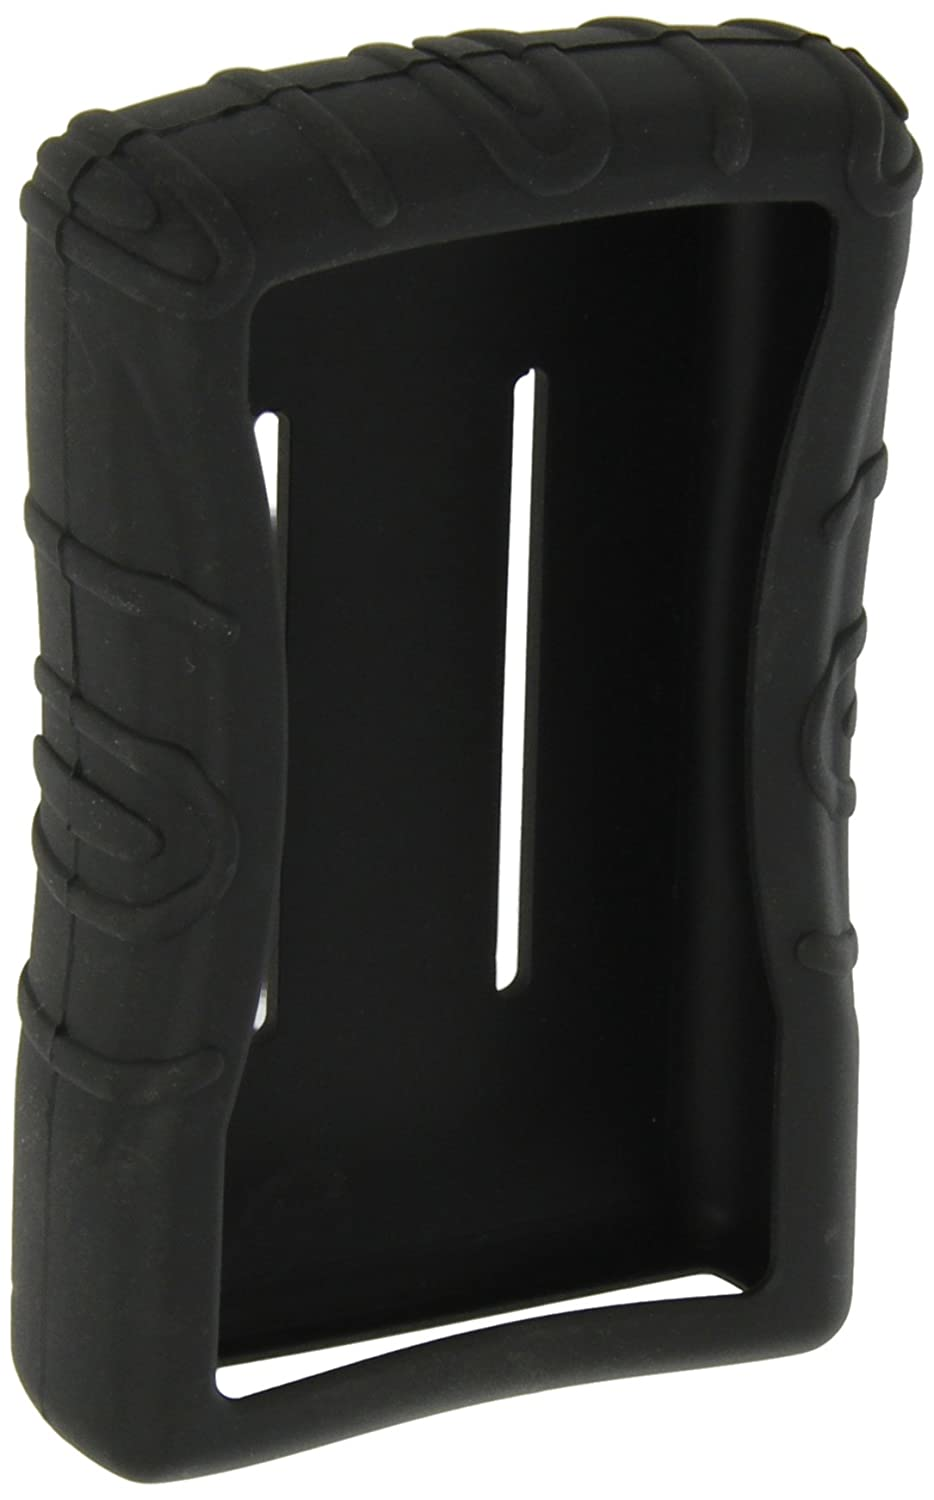 BUD Industries HH-3529-BBK Rubber Boot for Style K Hand Held Grabber, Black by BUD Industries